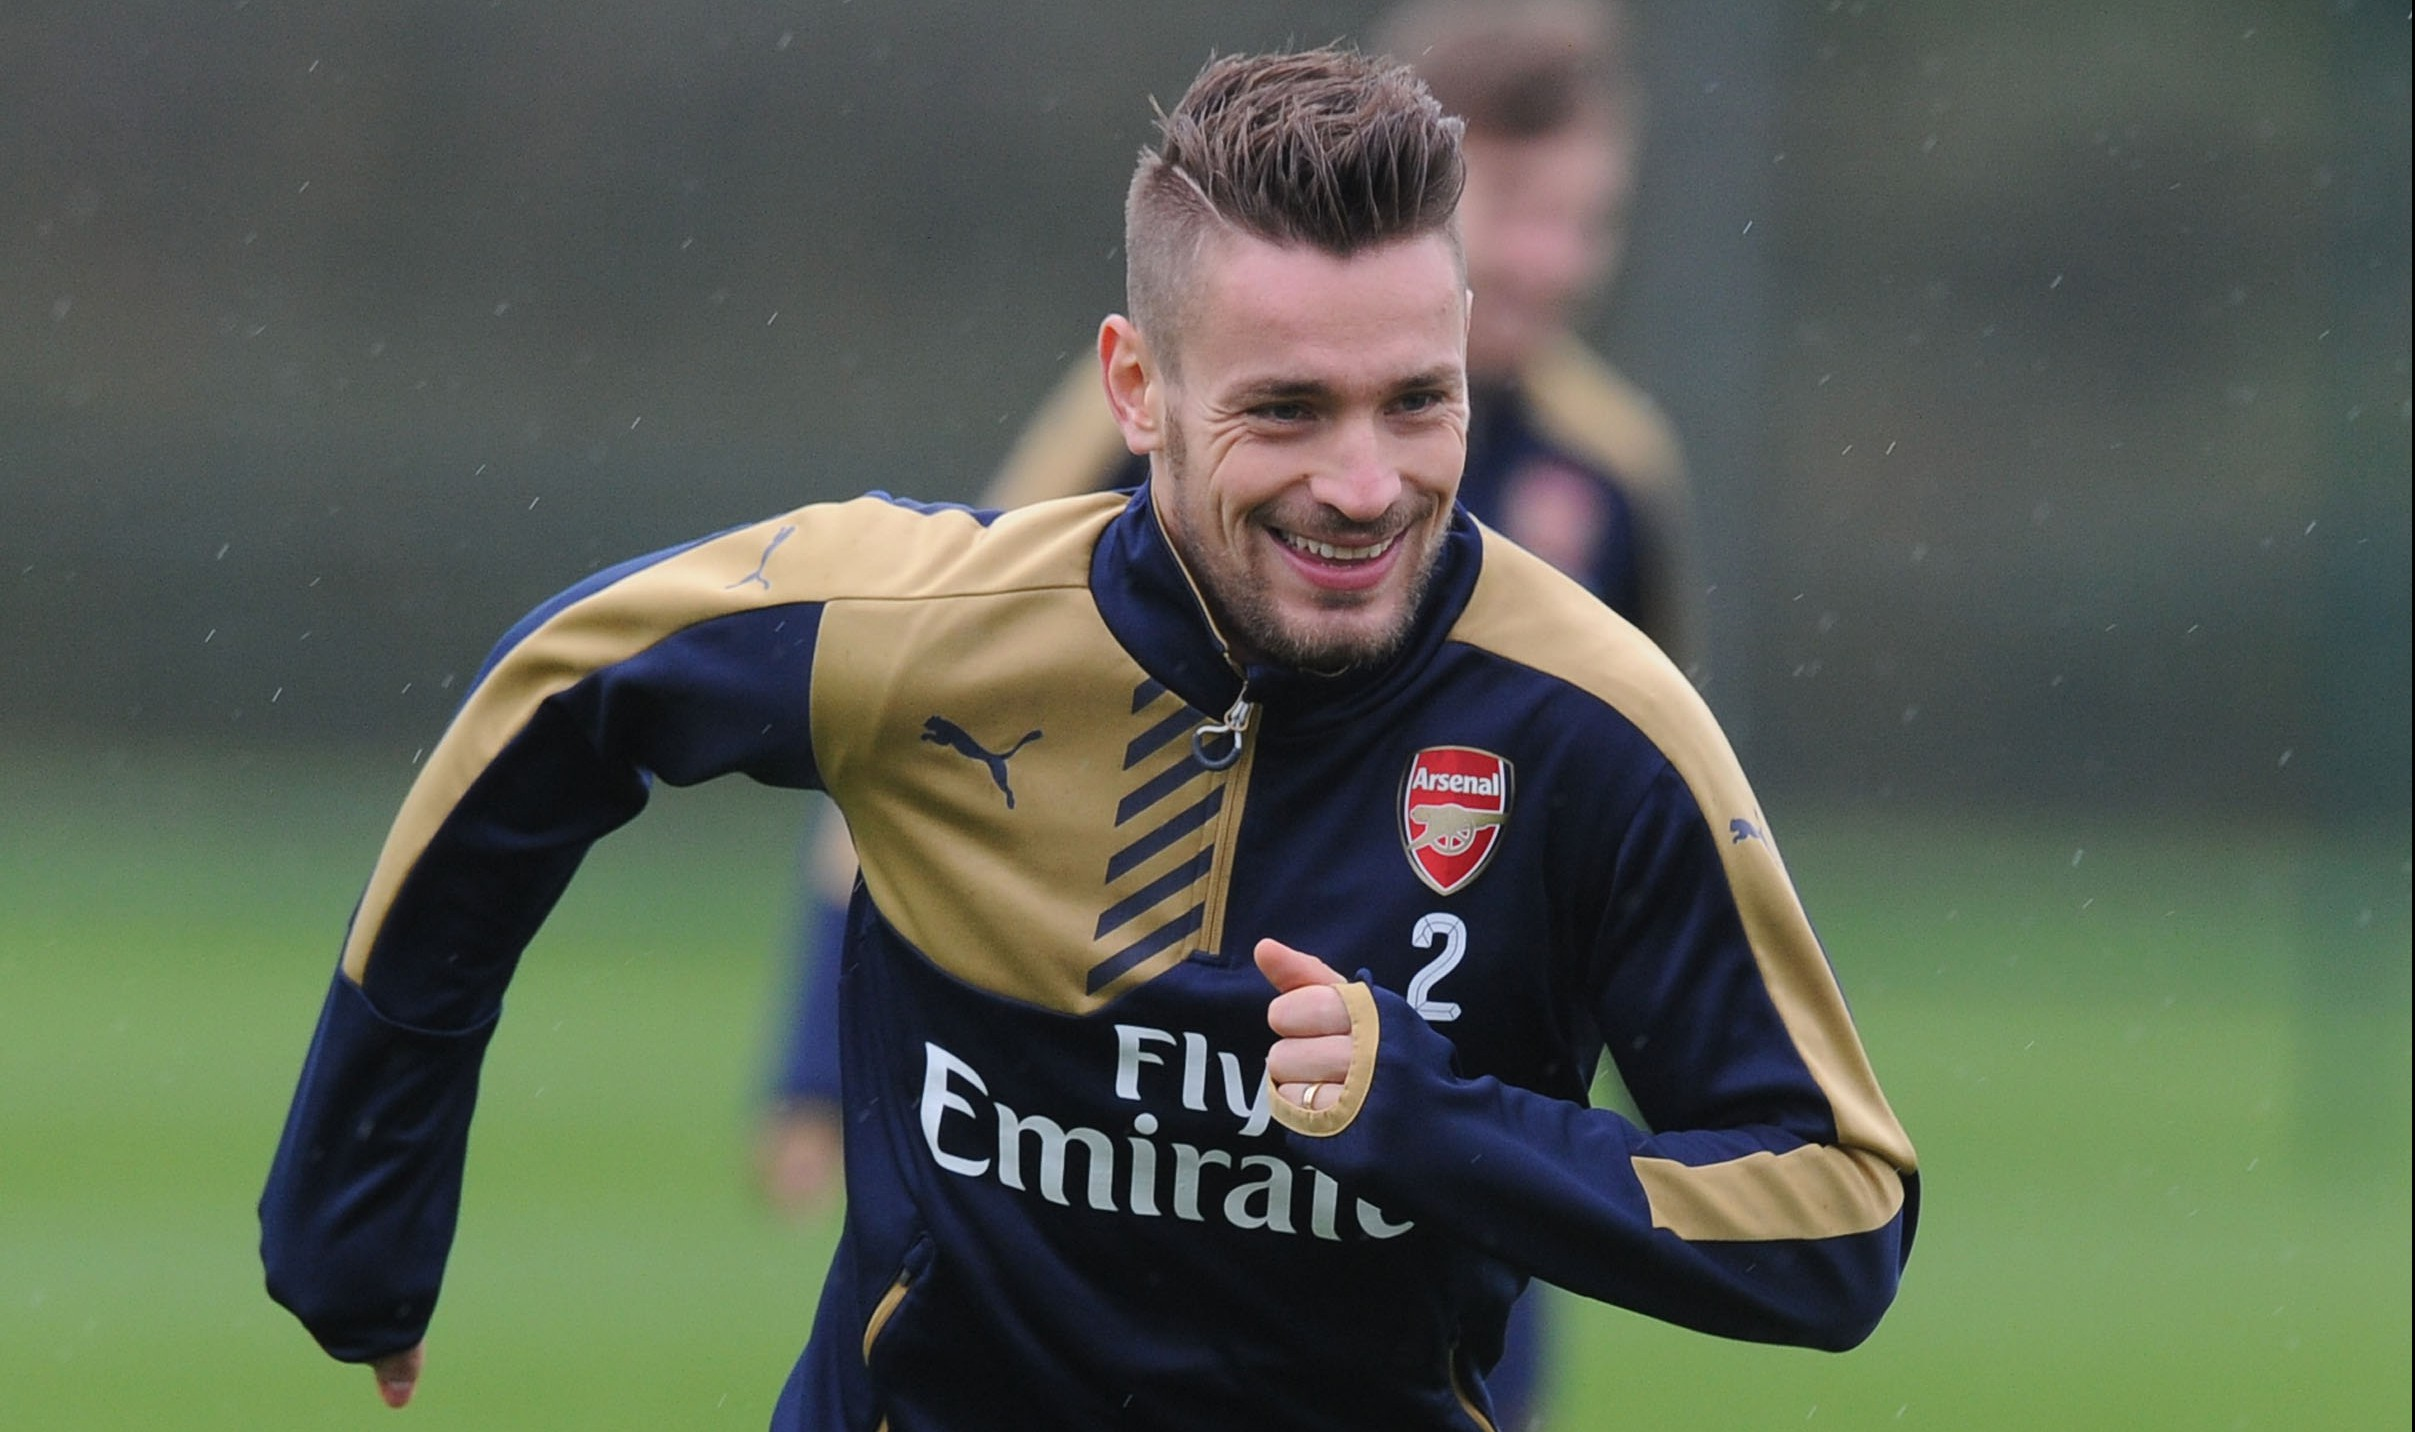 ST ALBANS, ENGLAND - DECEMBER 12: Mathieu Debuchy of Arsenal during a training session at London Colney on December 12, 2015 in St Albans, England. (Photo by Stuart MacFarlane/Arsenal FC via Getty Images)